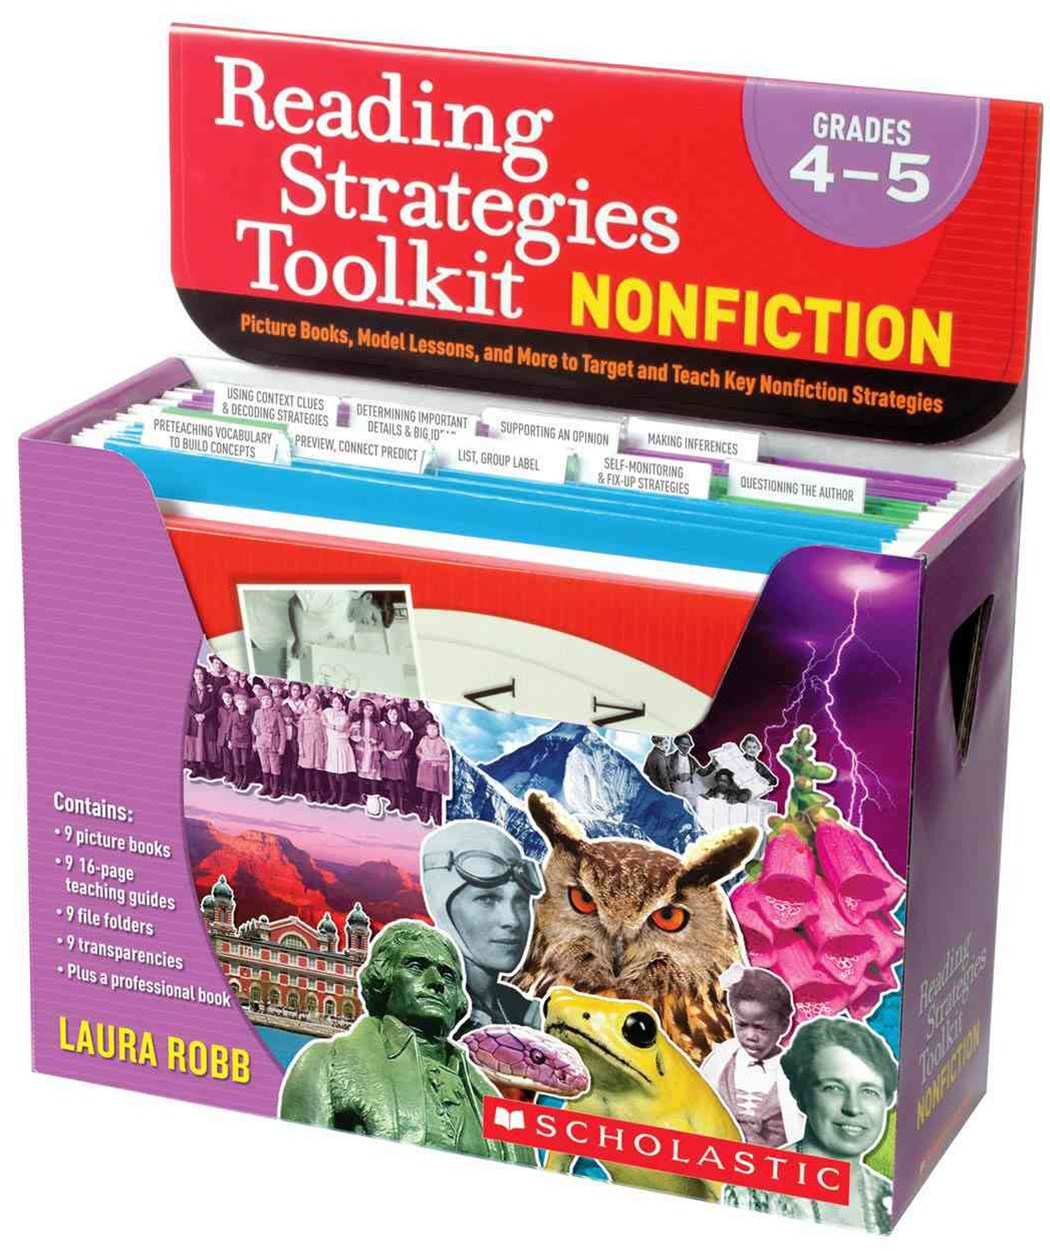 Reading Strategies Toolkit - Nonfiction, Grades 4-5